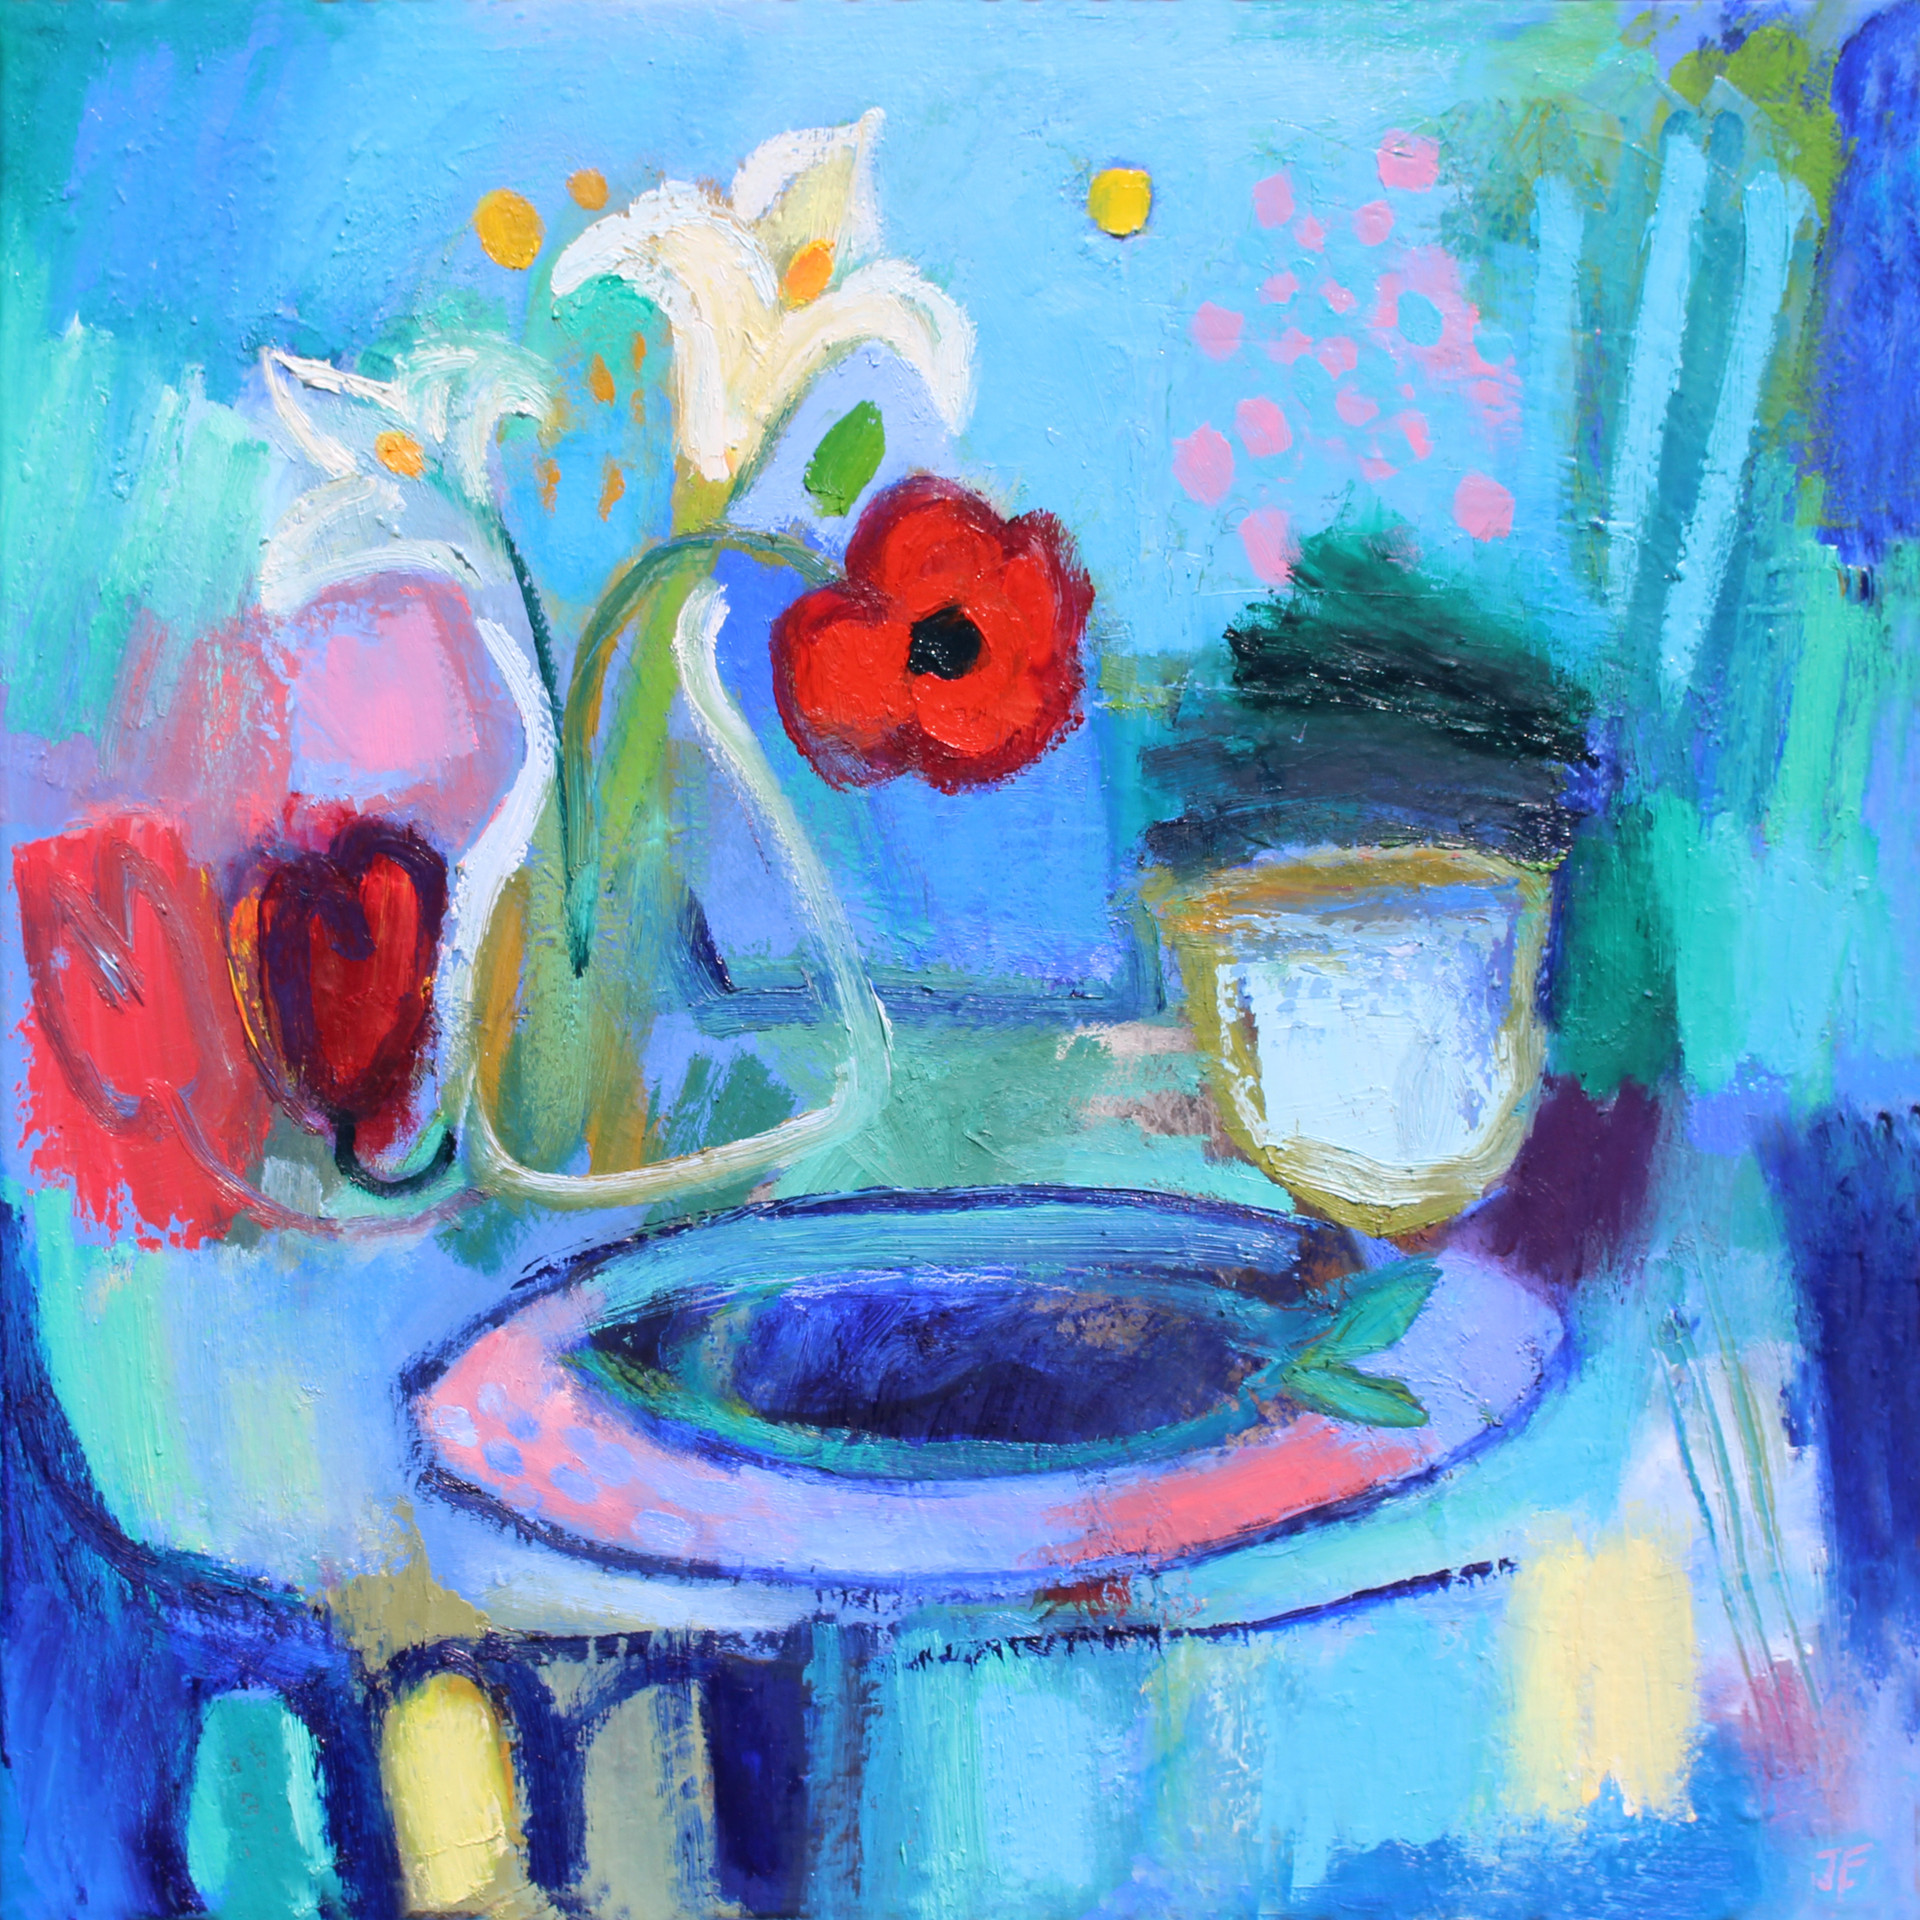 Kitchen table - Oil on Canvas           60 x 60cm         SOLD